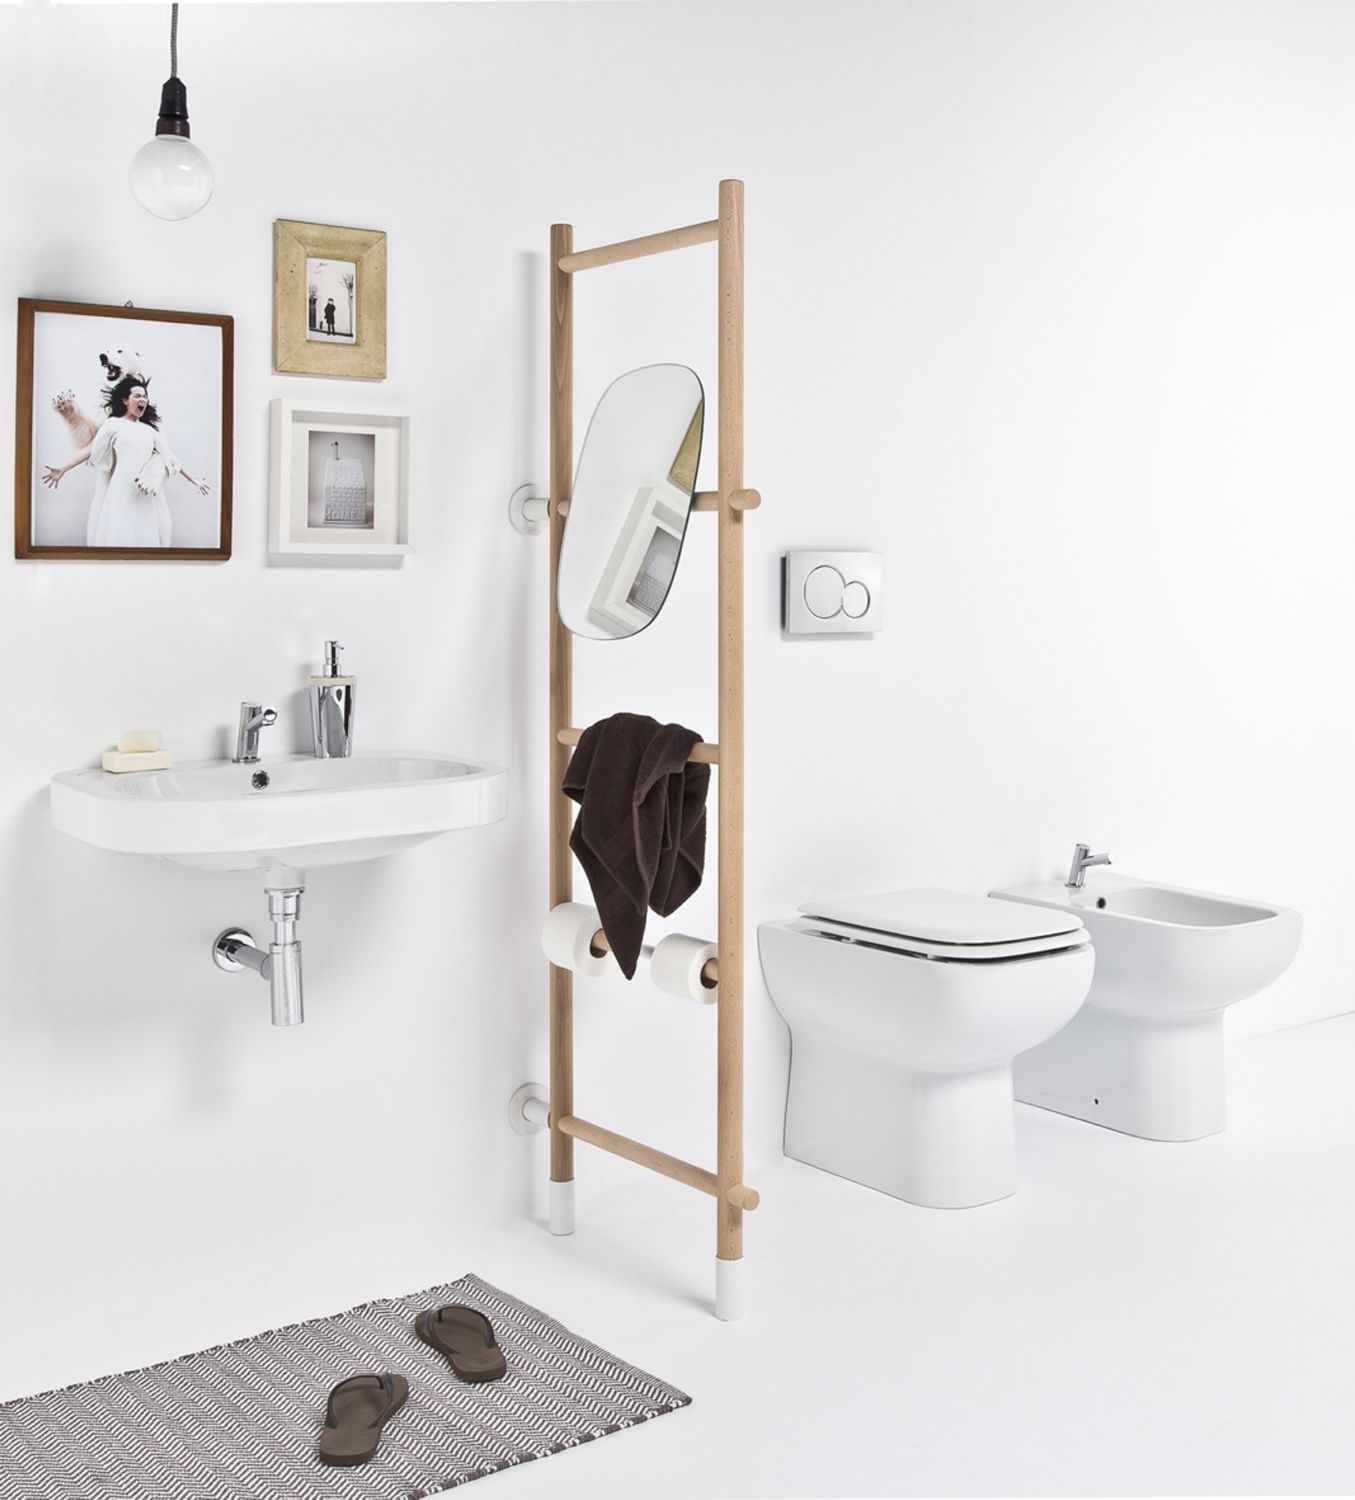 Accessori bagno foto 1 livingcorriere portasciugamani for Design accessori bagno